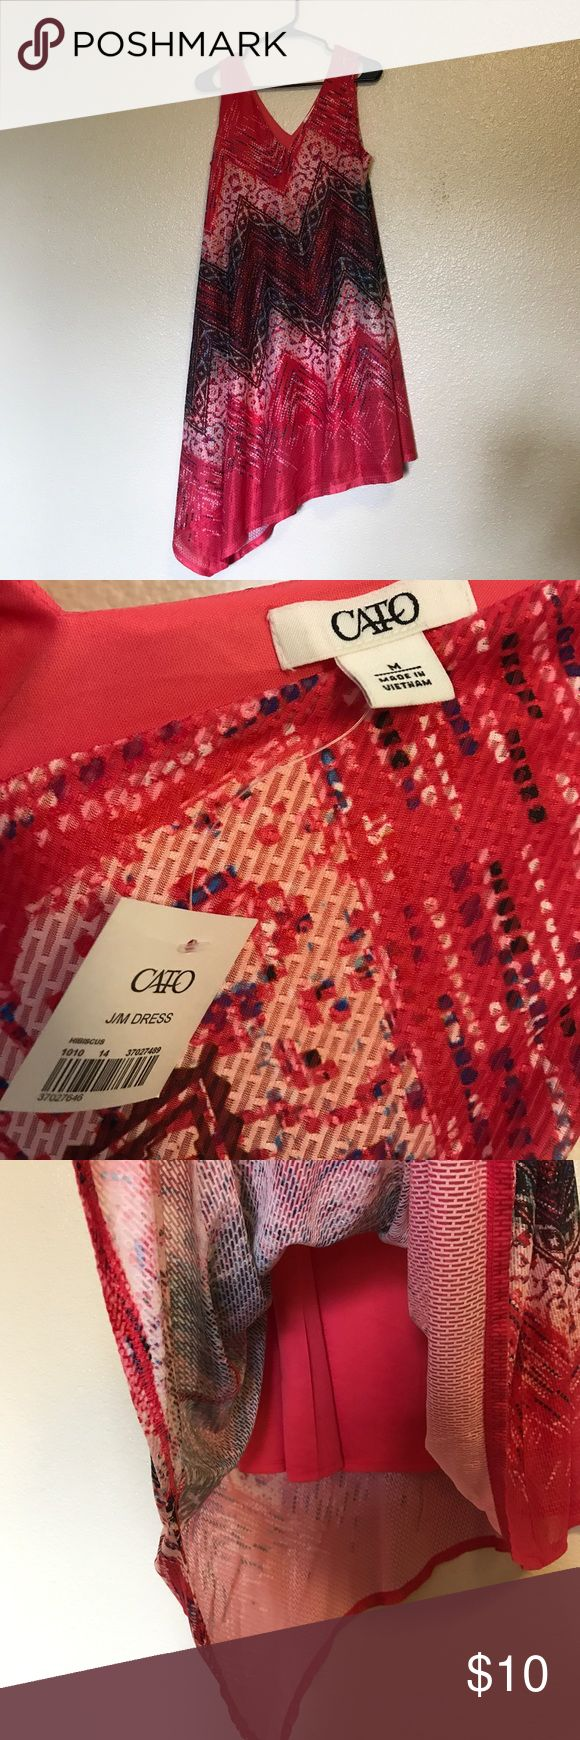 NWT! Beautiful flowy summer dress! Super cute and colorful flowy summer dress. Light airy material, lining underneath. V neck and V back. Longer at the one side. Flows beautifully for the beach or can easily be dressed up too! New with tags! CATO Dresses Asymmetrical